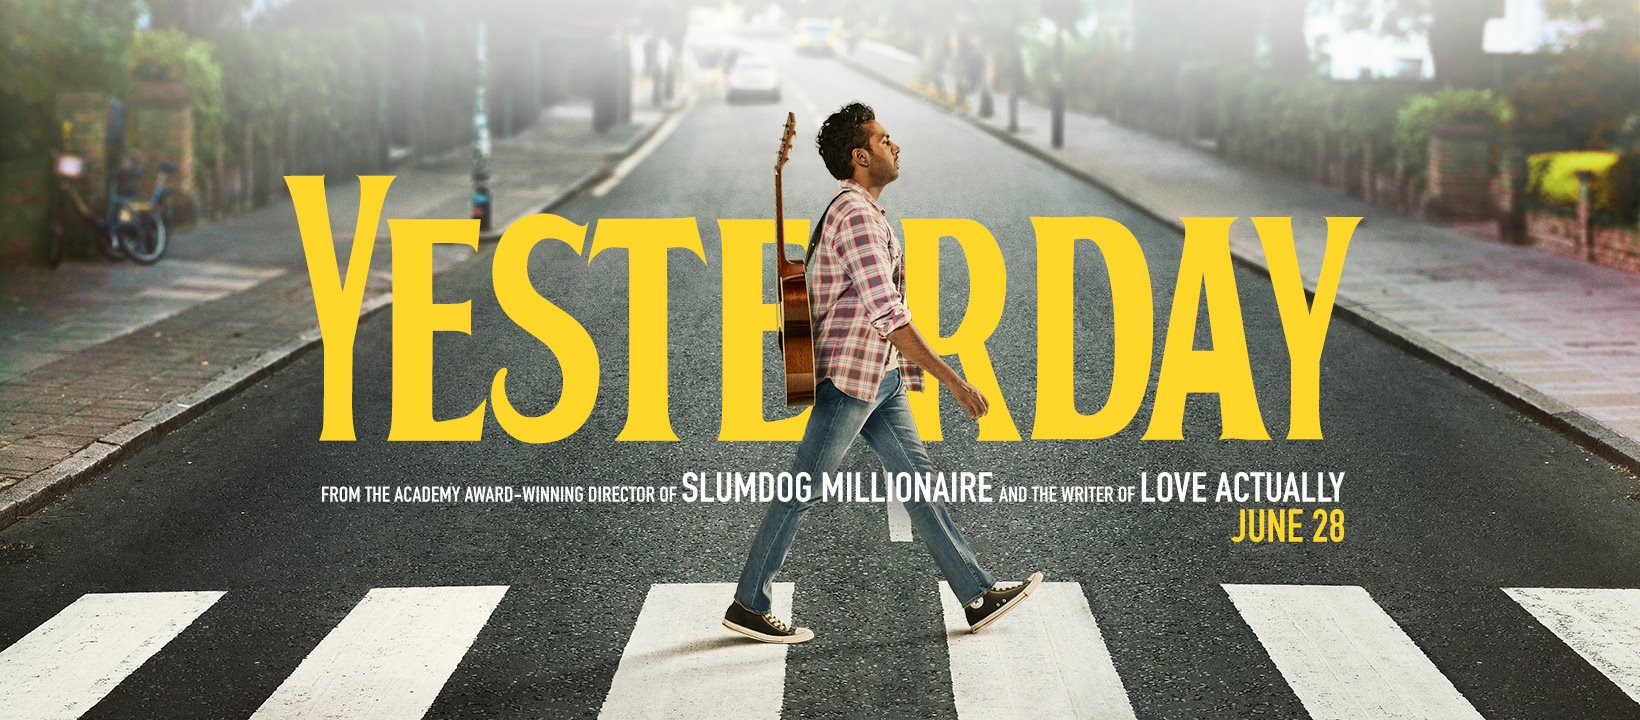 Yesterday - Danny Boyle Film